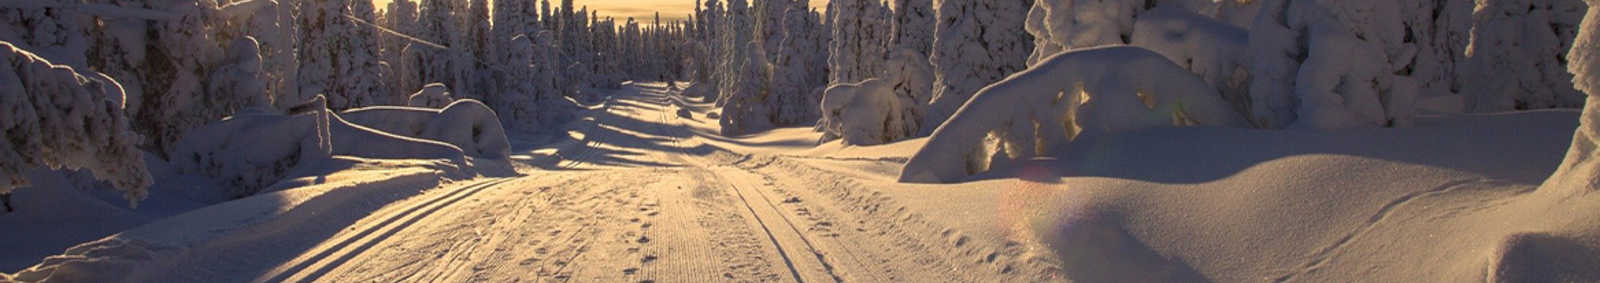 Finland snowy landscape with the sun rising